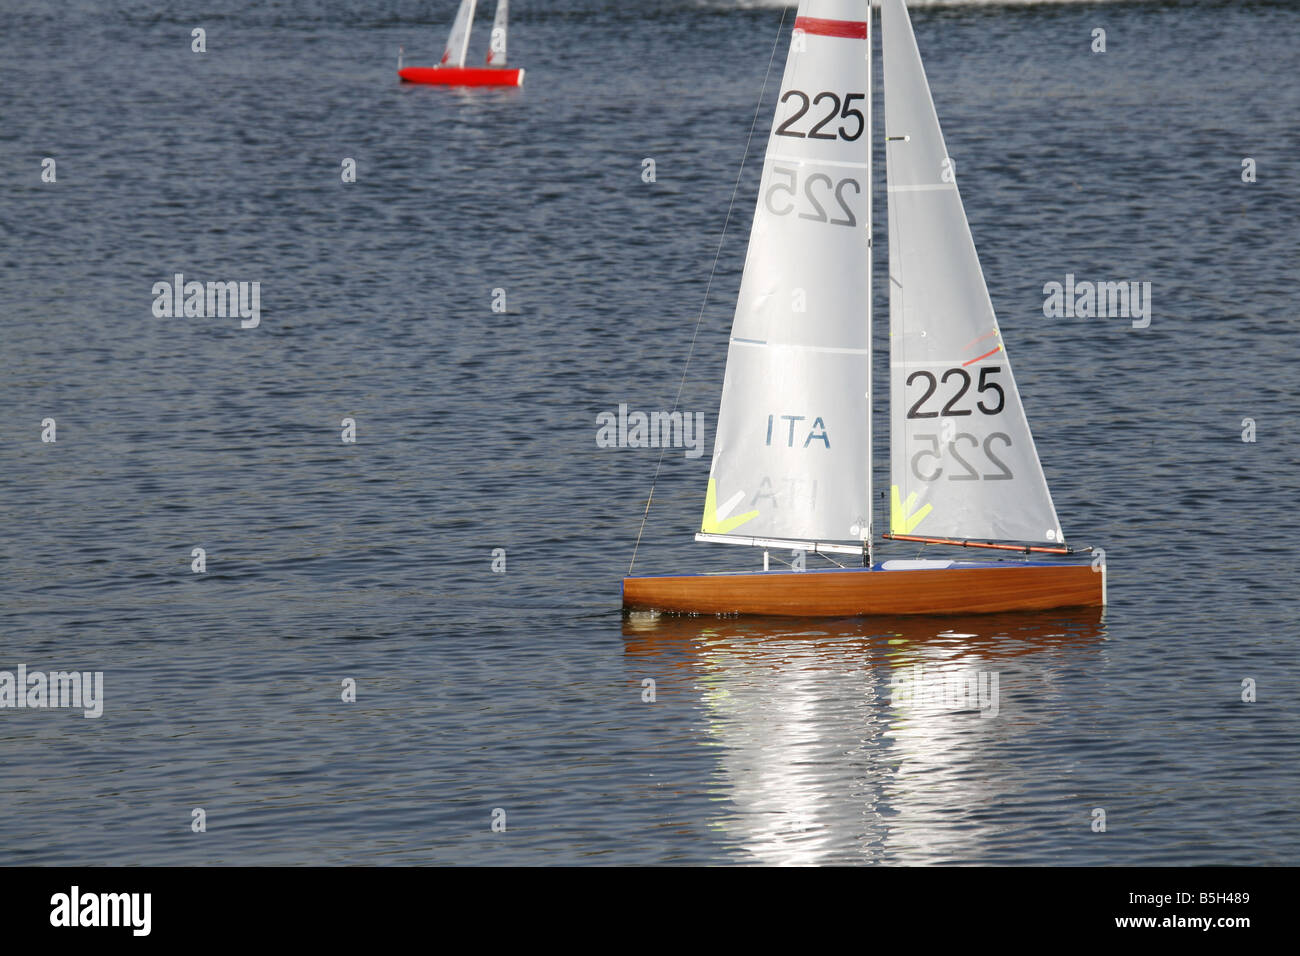 Fast Remote Control Toy Yachts Boats On Lake Italy Stock